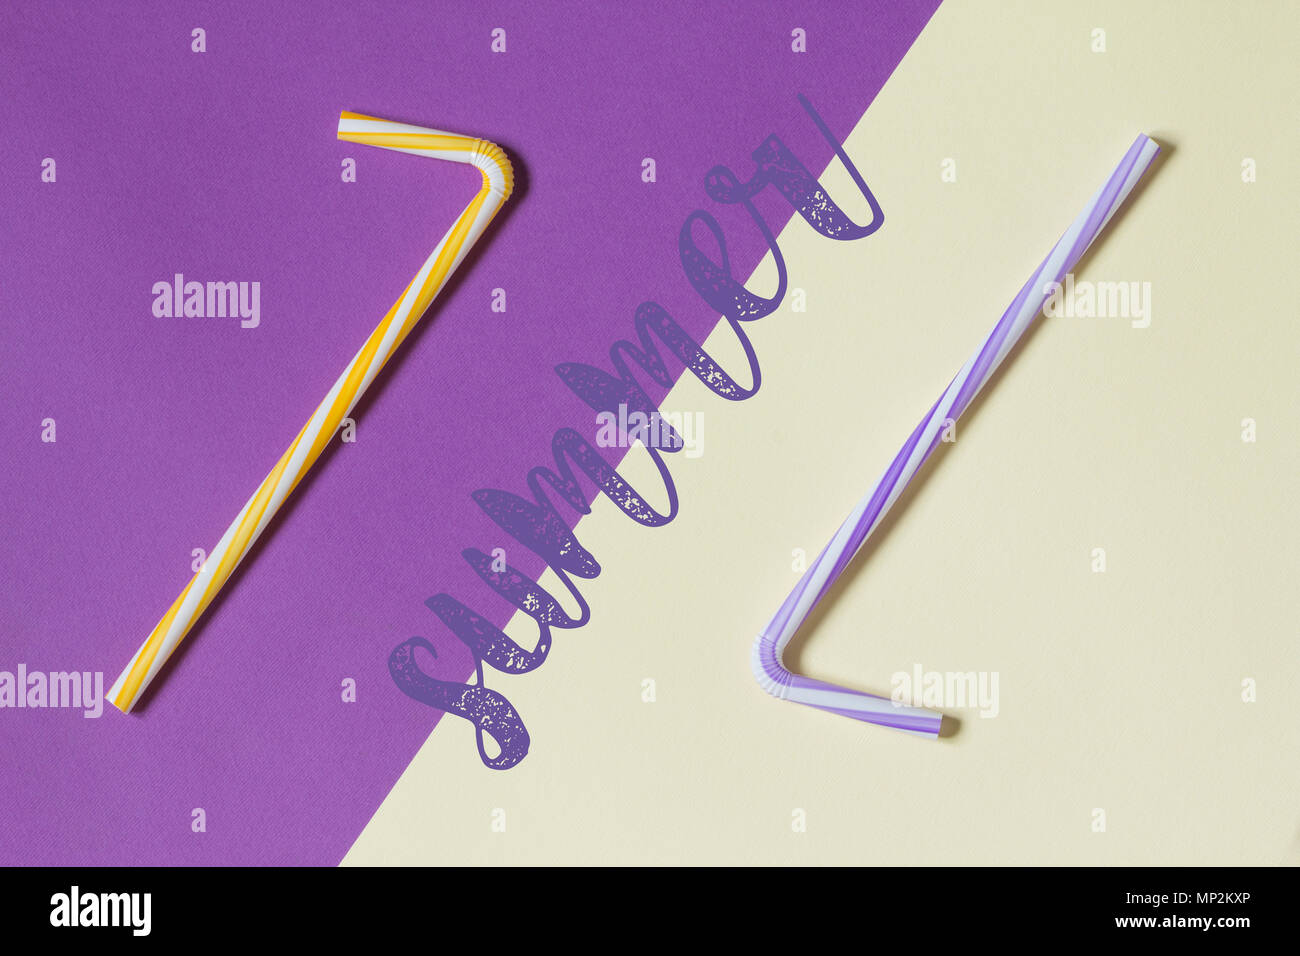 Creative view of drinking straws for party on a two-tone background - ultra violet and yellow. Top view. - Stock Image